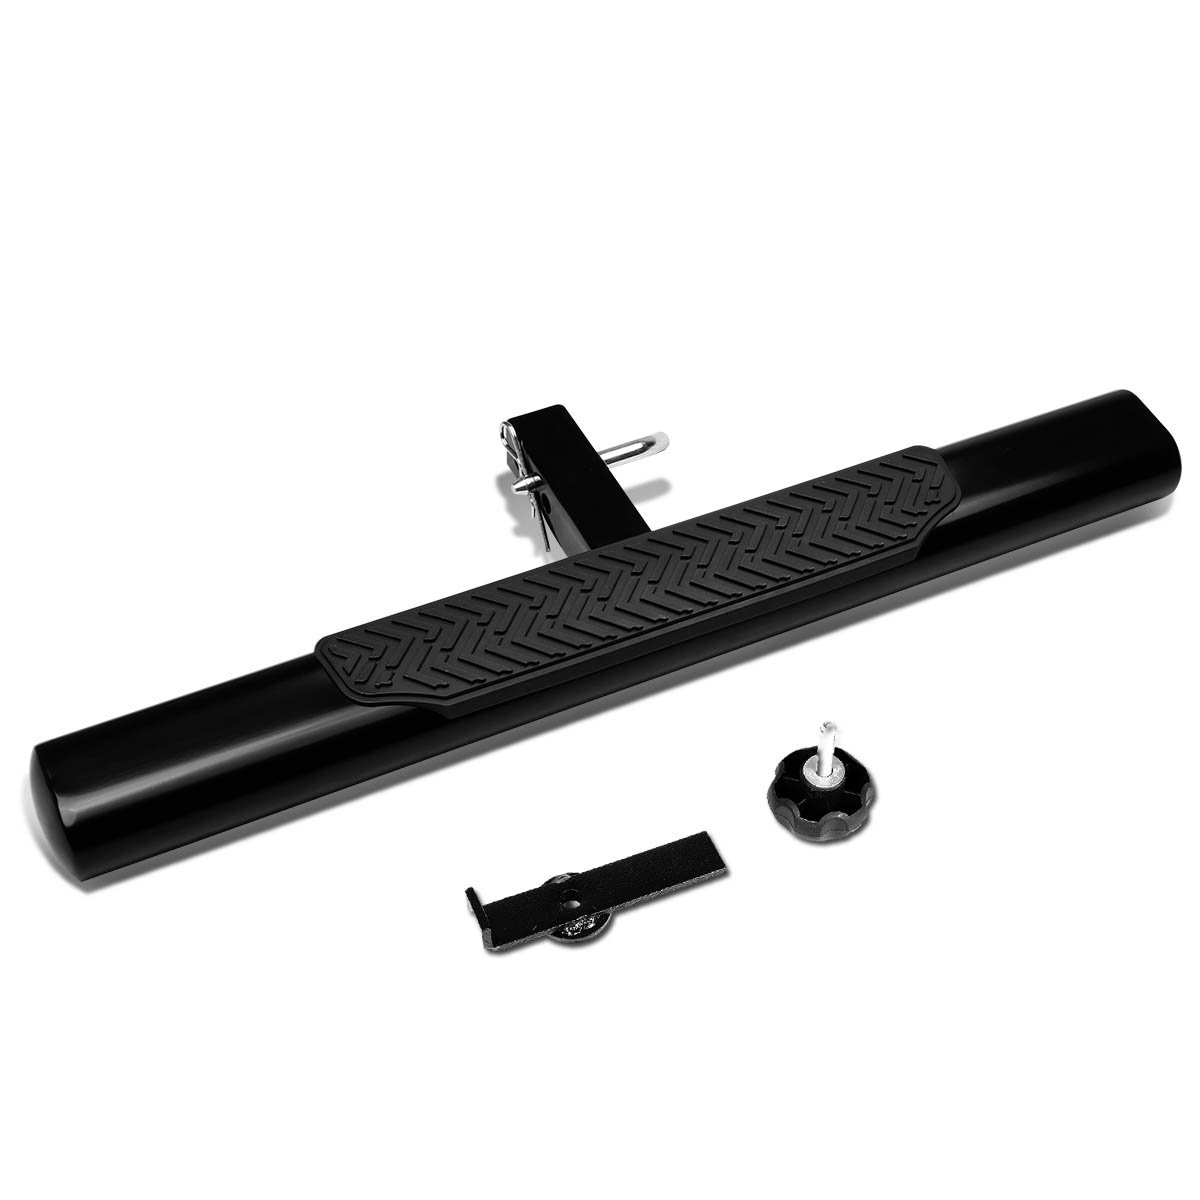 DNA MOTORING HITST-2-4O-111-BK-T2 Class III 4'' Oval Hitch Step by DNA MOTORING